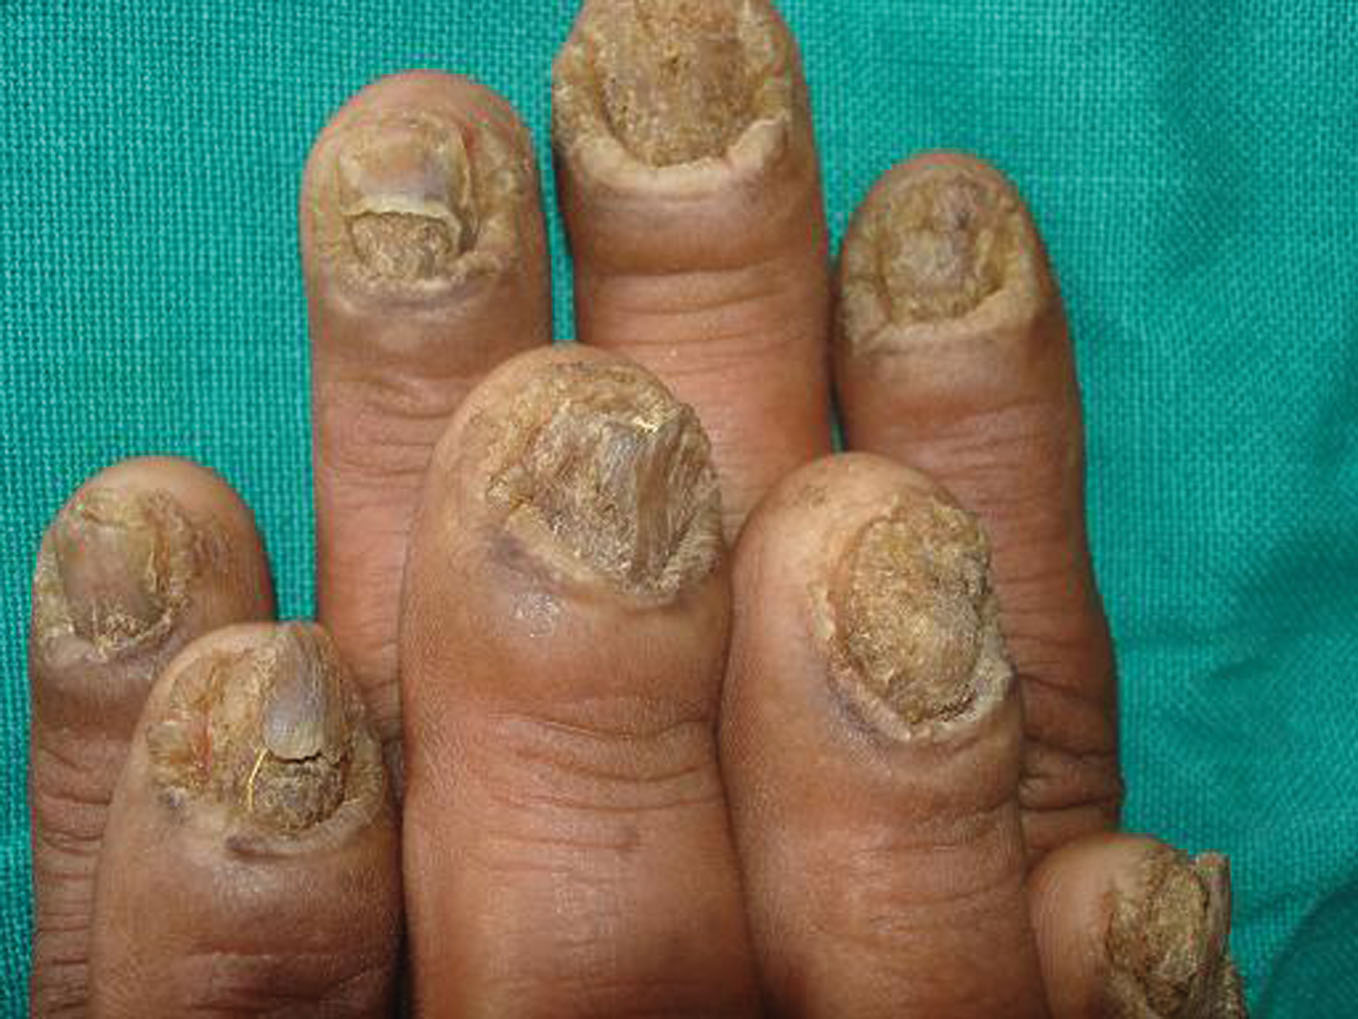 Fungus Infection Hands Male Yeast Infection Symptoms Pictures